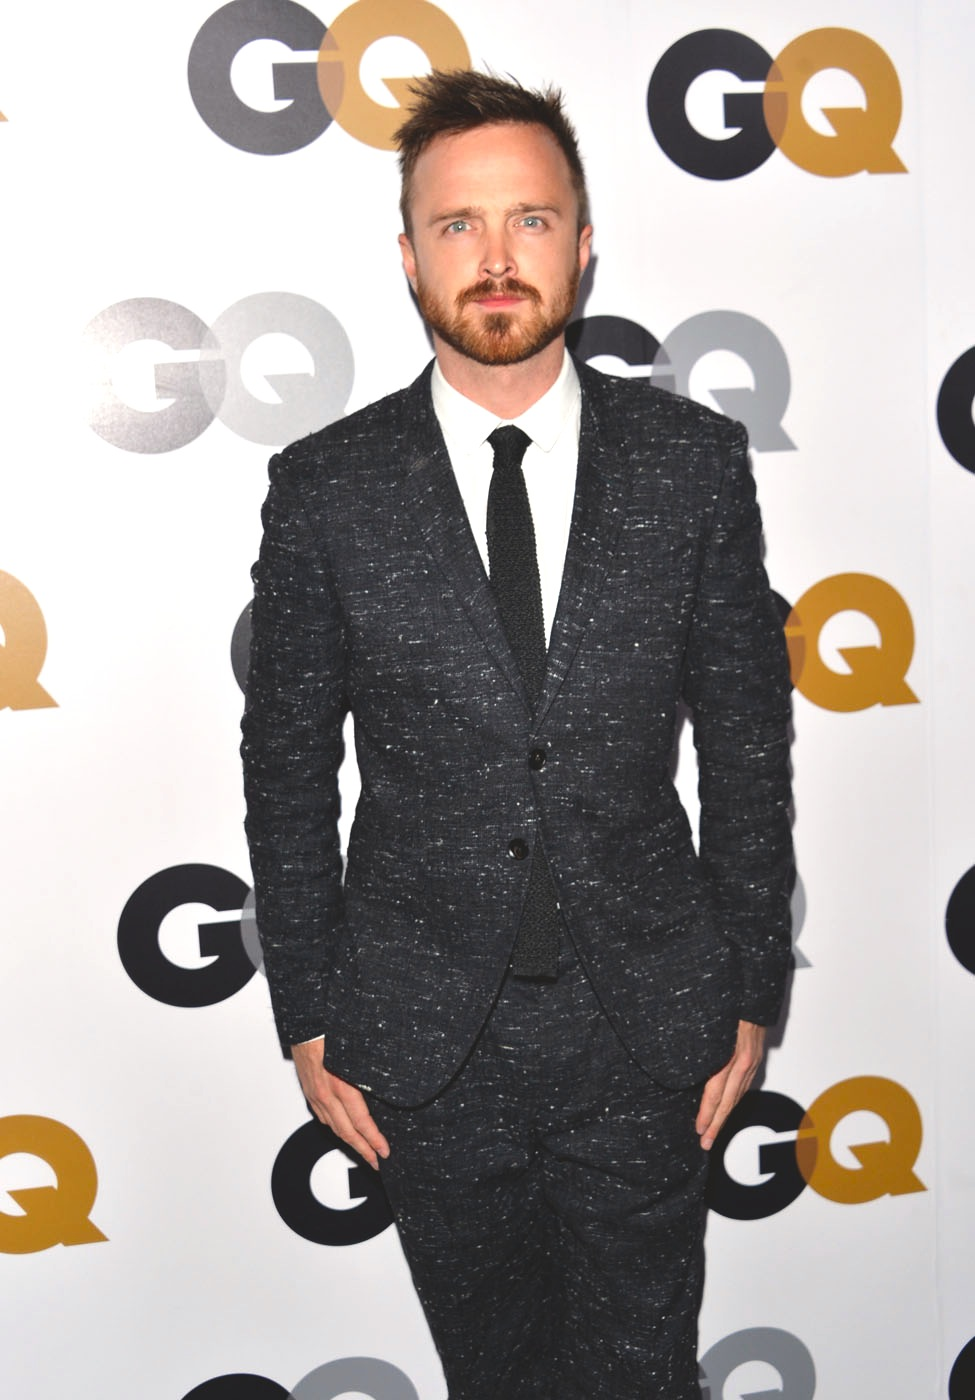 gq-man-of-year-awards-2012-11142012-15.jpg